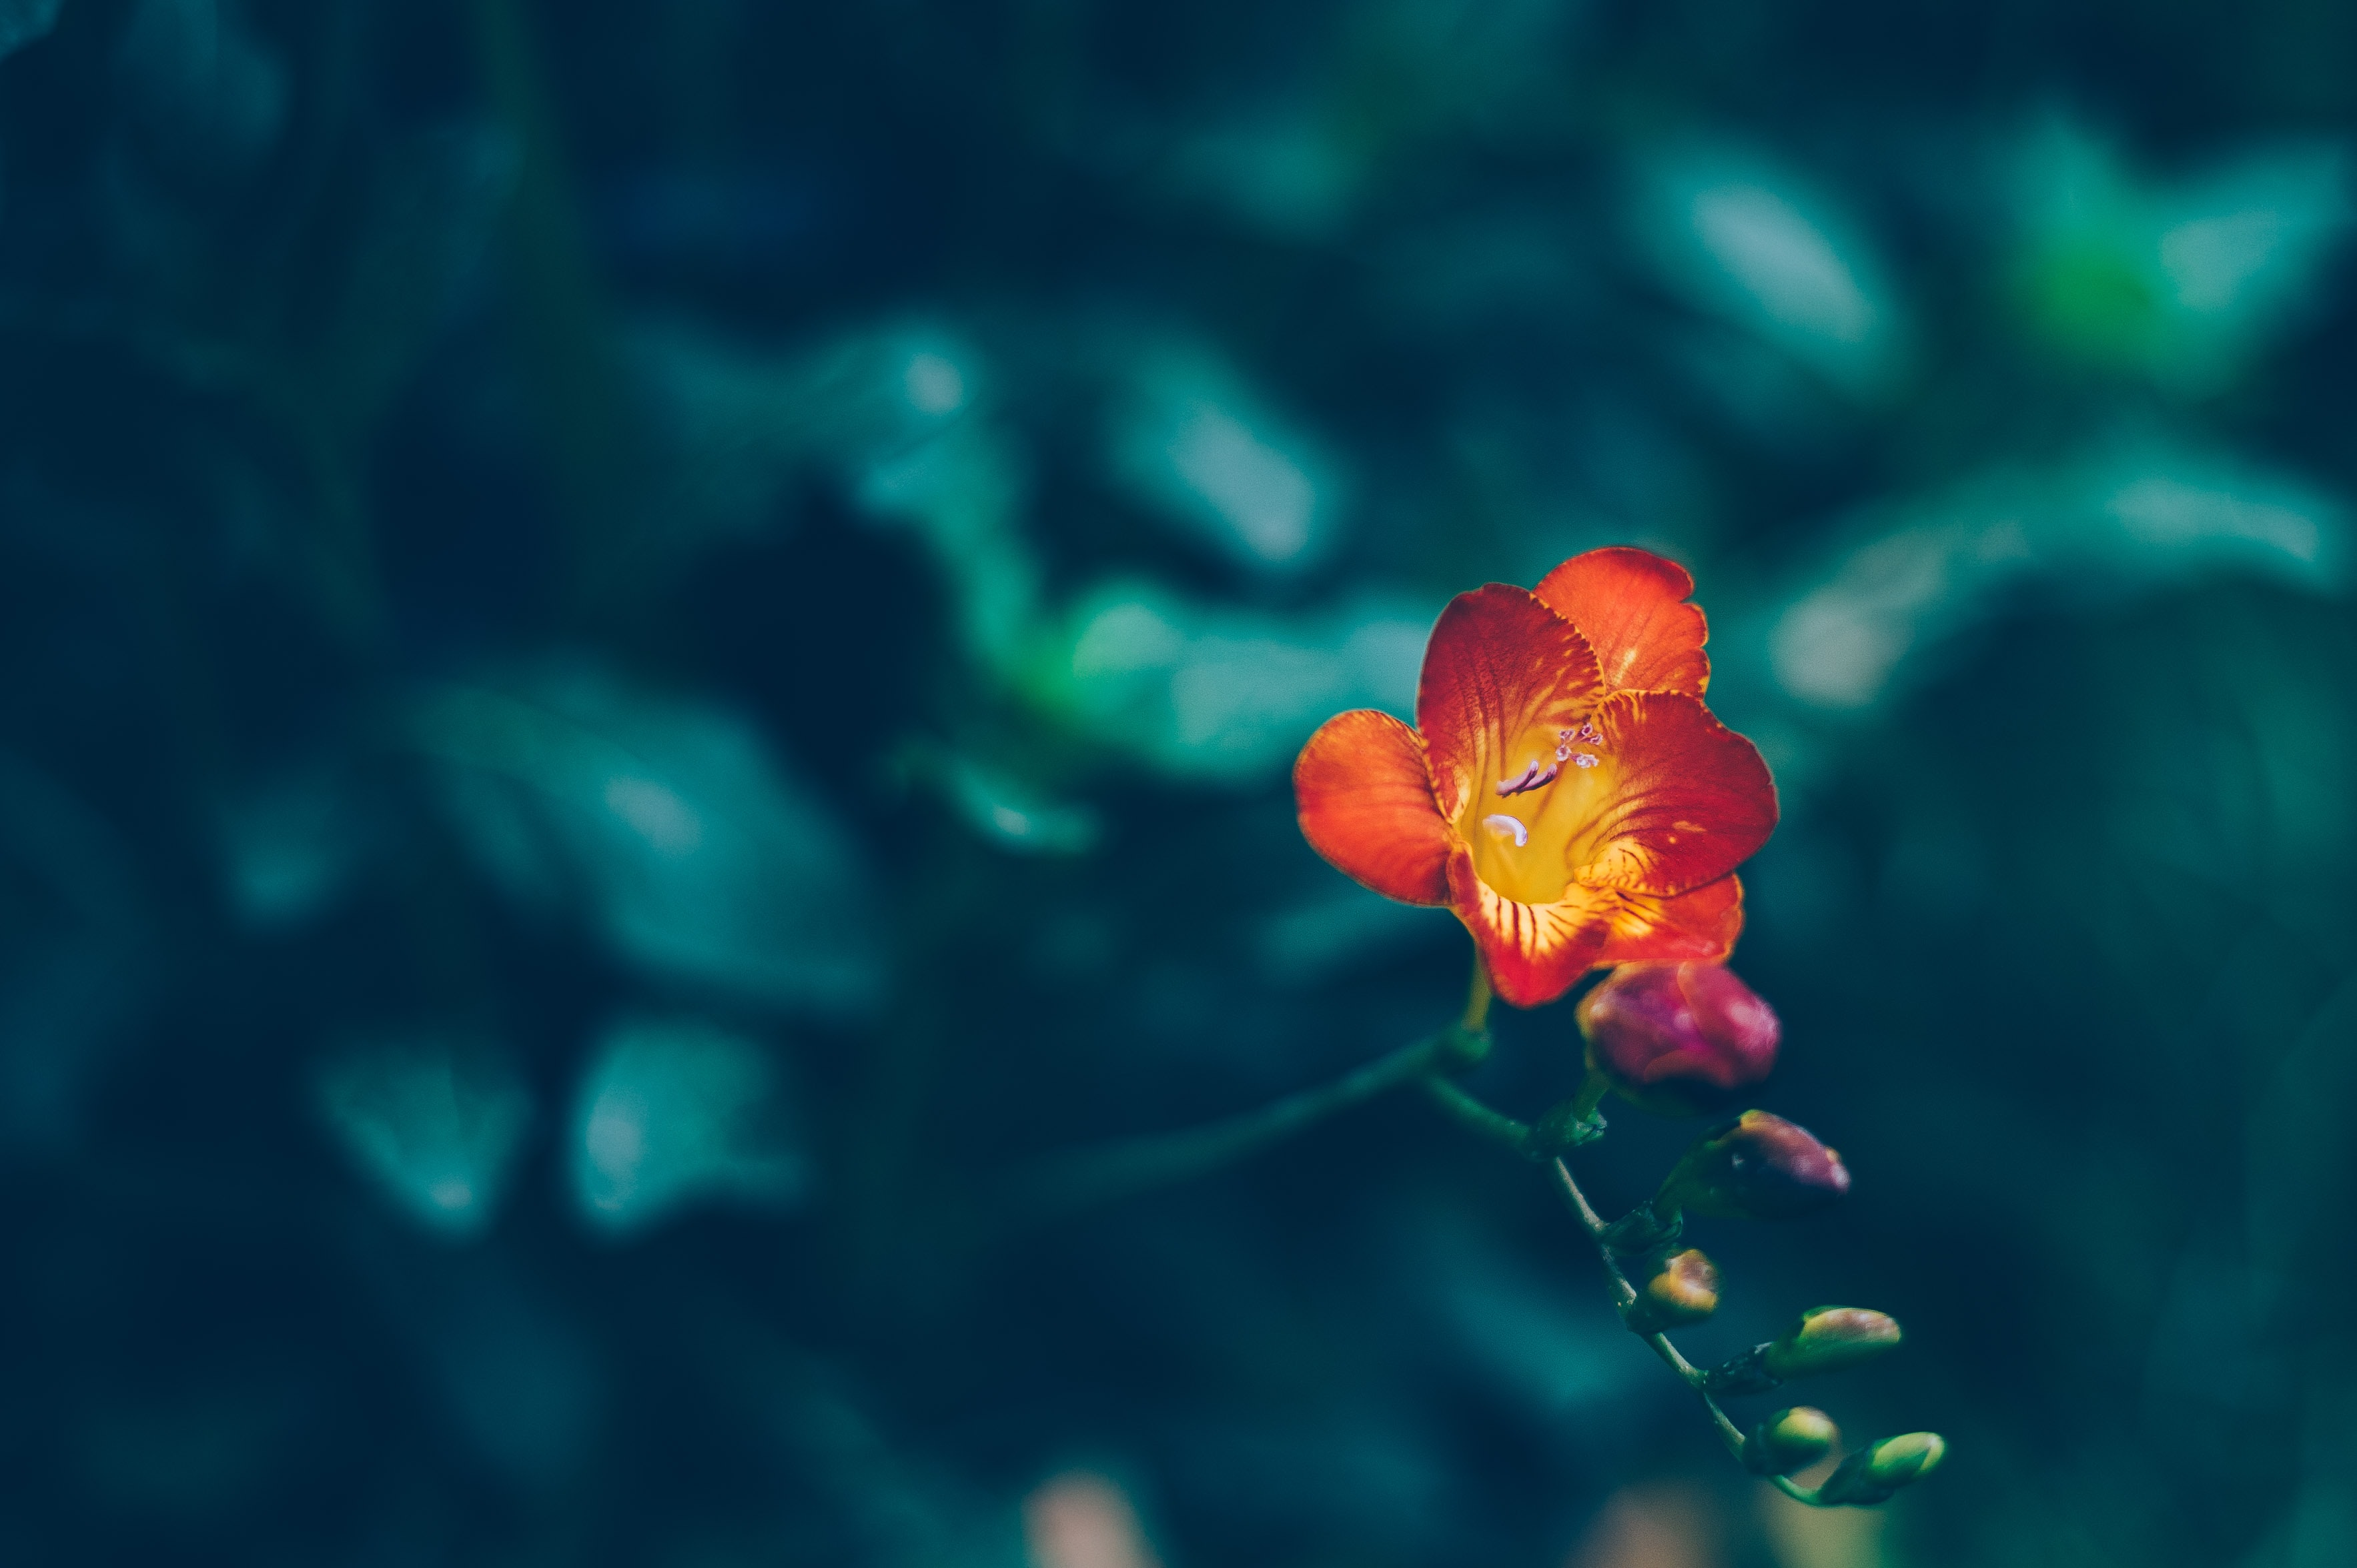 selective focus photography of orange flower